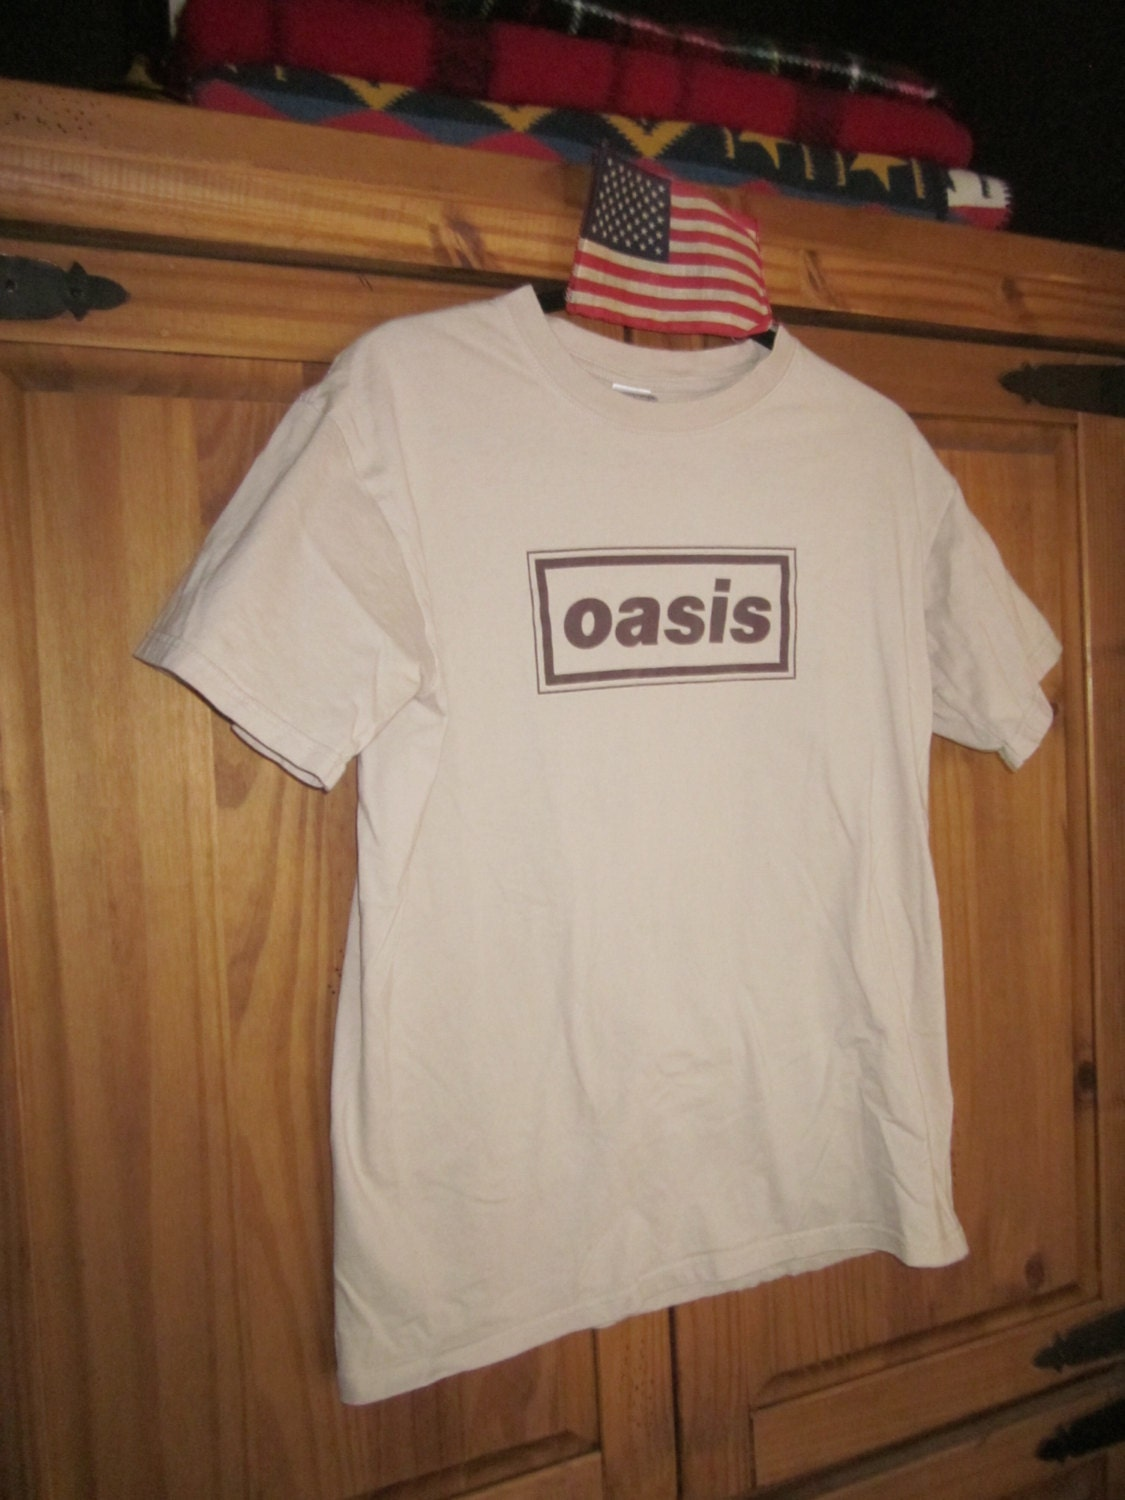 oasis t shirt by chocolatepalomino on etsy. Black Bedroom Furniture Sets. Home Design Ideas